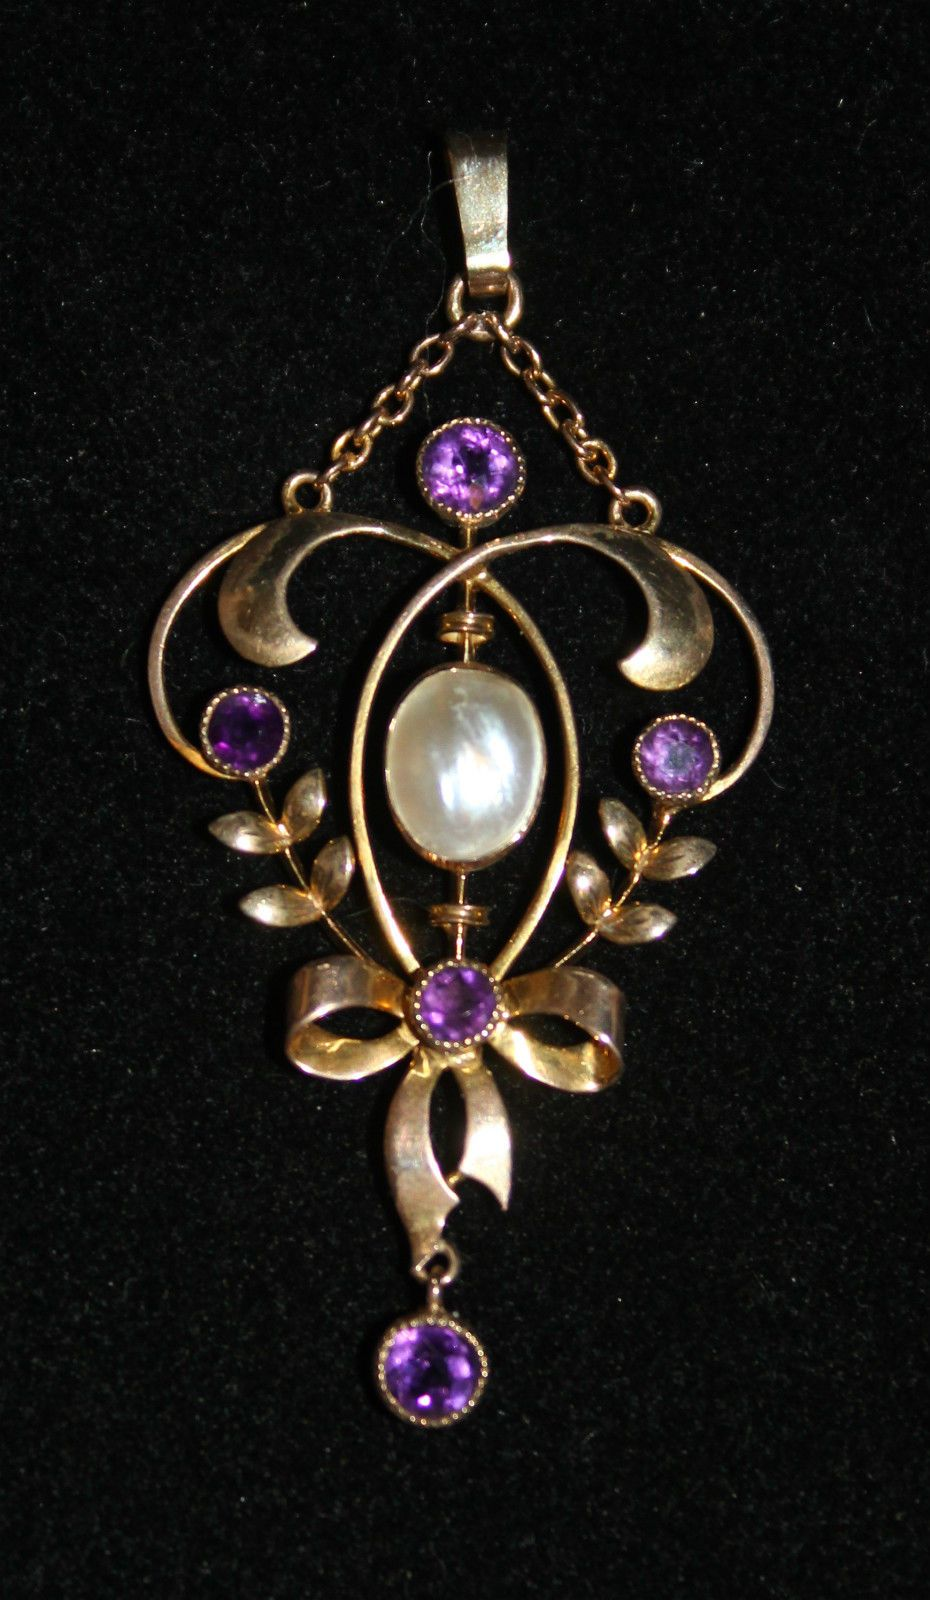 """This is a stunning Art Nouveau pendant with amethysts and a central blister pearl set in 9 ct gold (marked """"9ct"""" on the back) which would have been made around the 1900's. It measures 4.8 x 2.3 cm in size including bale. 